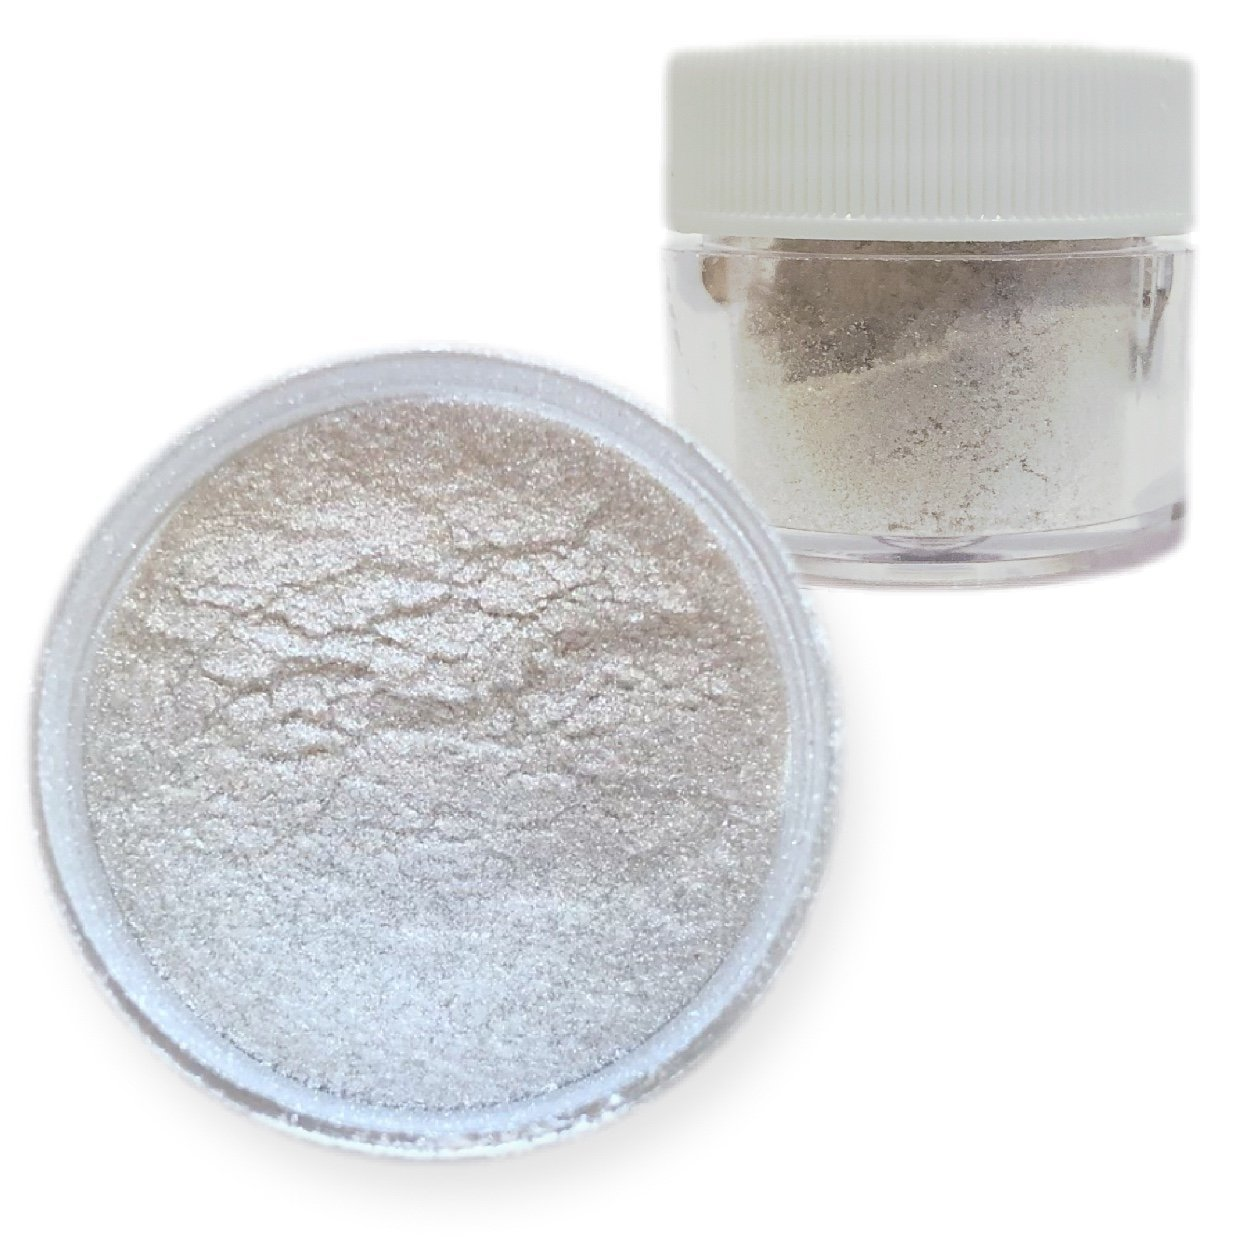 Bakell Super Intense Pearl White Edible Luster Fine Grain Pearlized Sparkle Food Grade Lustre Dust 4g